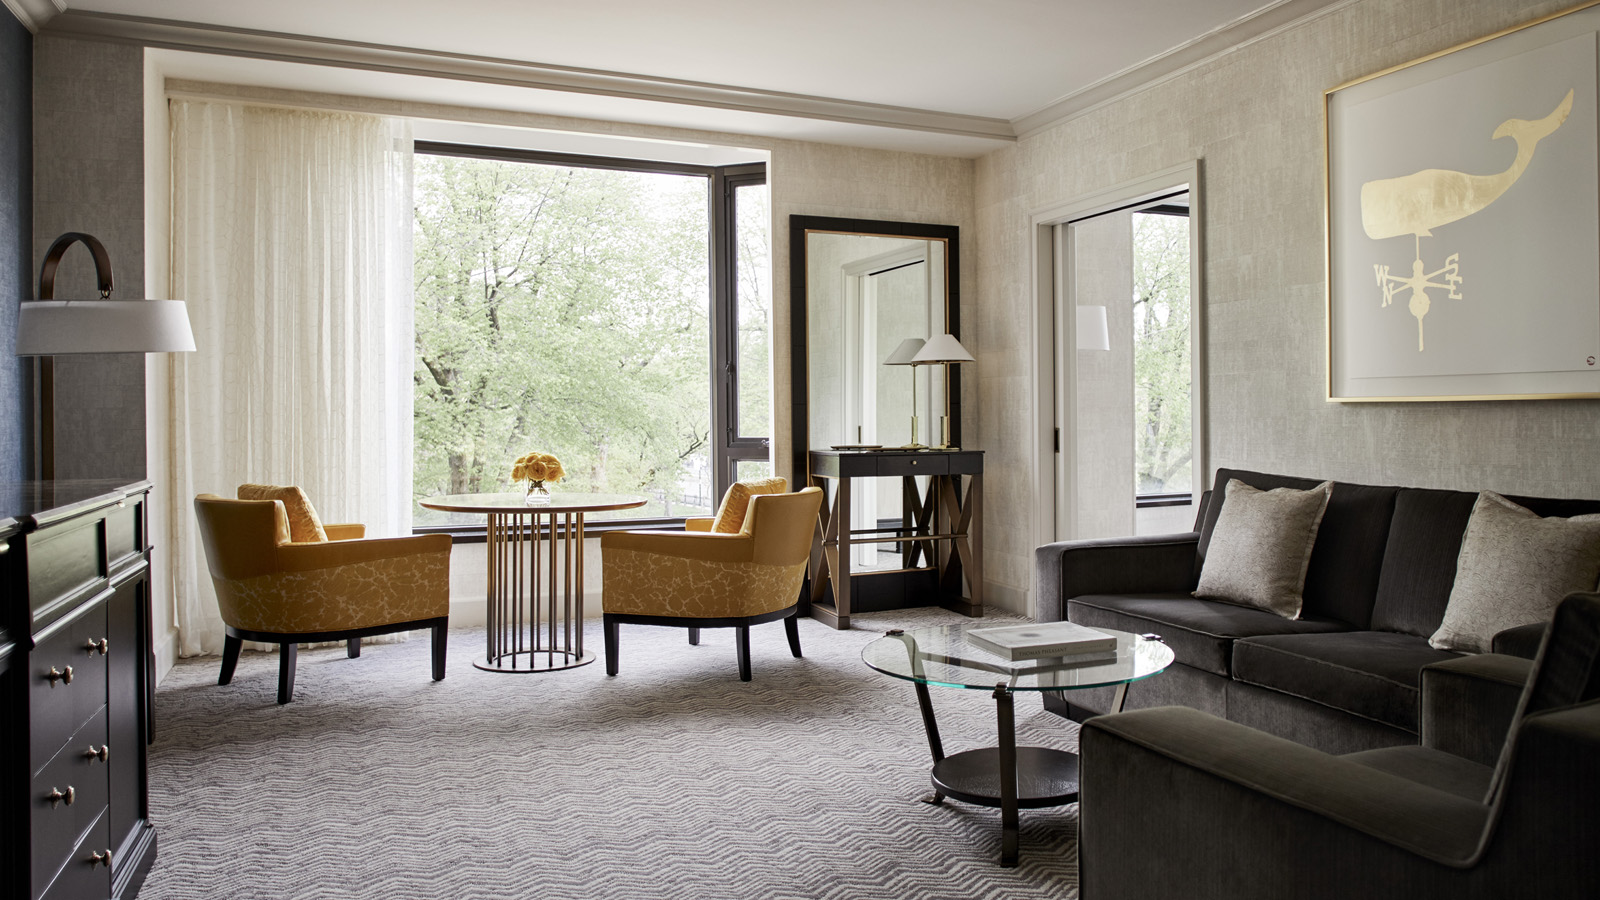 Experience Our Award Winning Service At Four Seasons Modern Conveniences Are Matched By Timeless Boston Charm To Create A Memorable Visit Room Rates